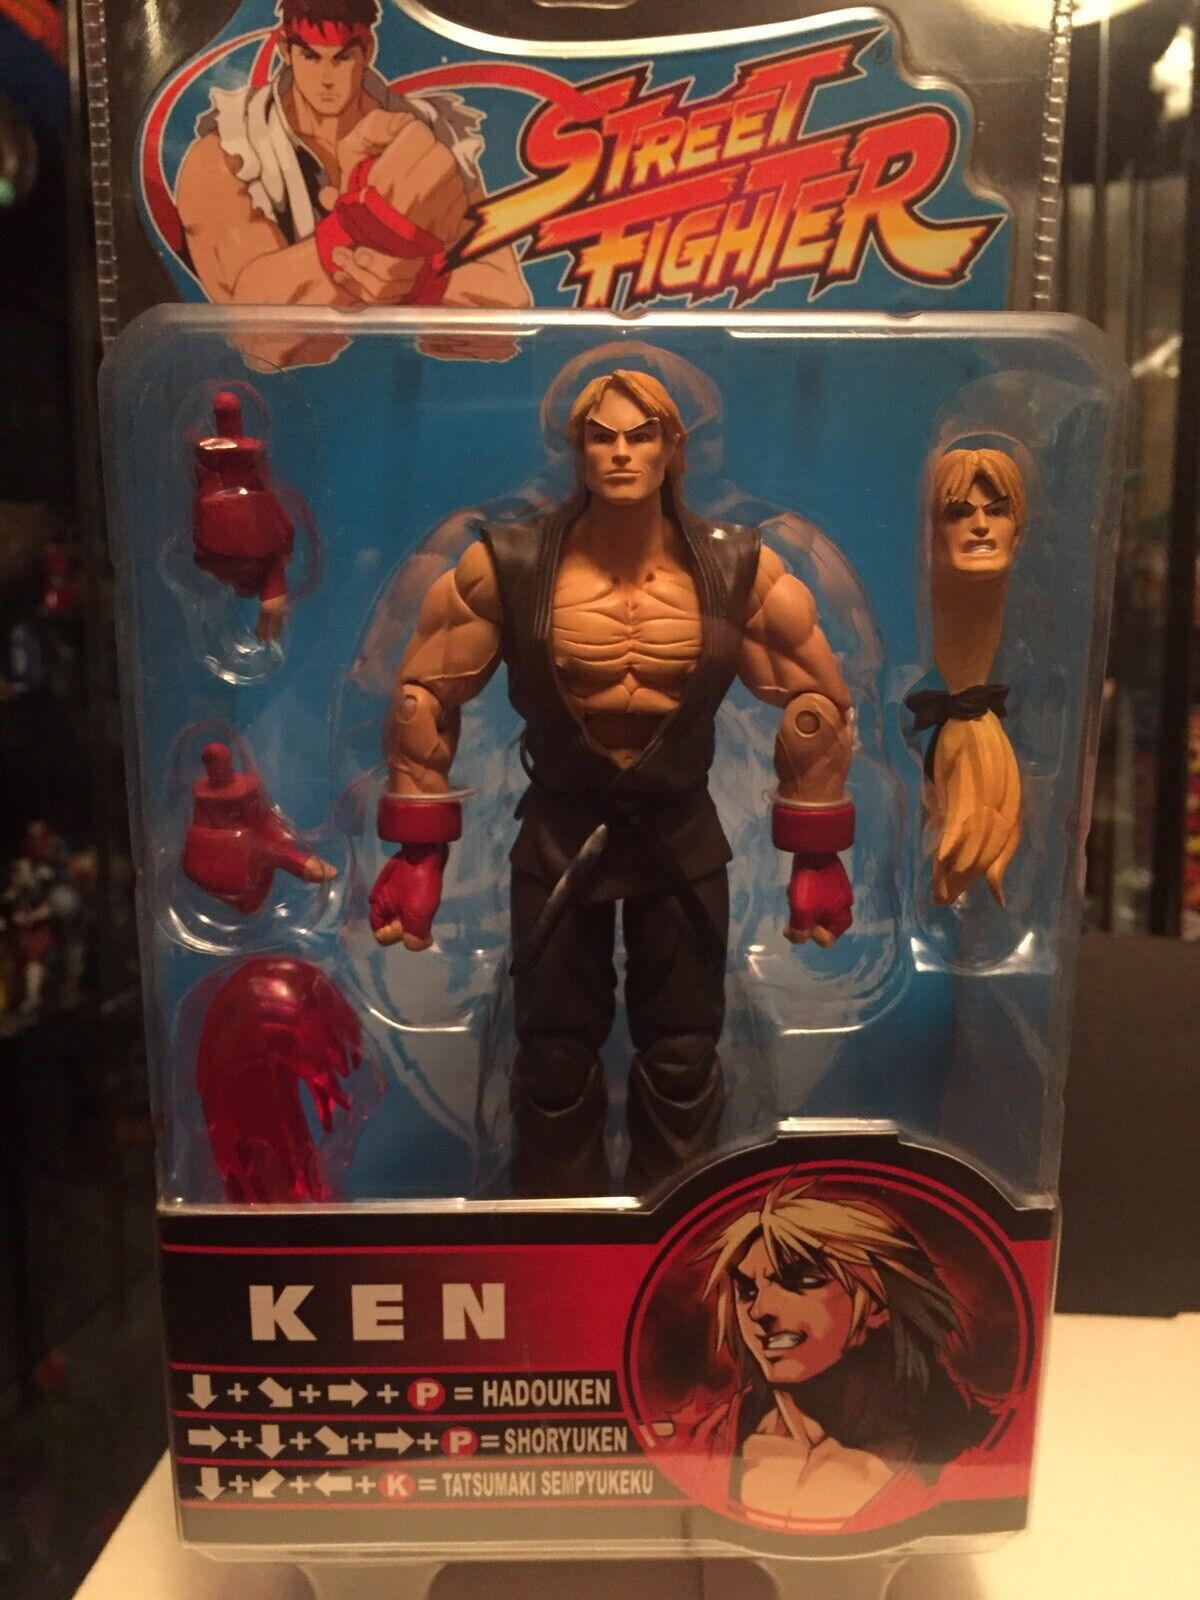 SOTA Street Fighter Capcom Ken Masters Round 2 Brown variant Action Figure